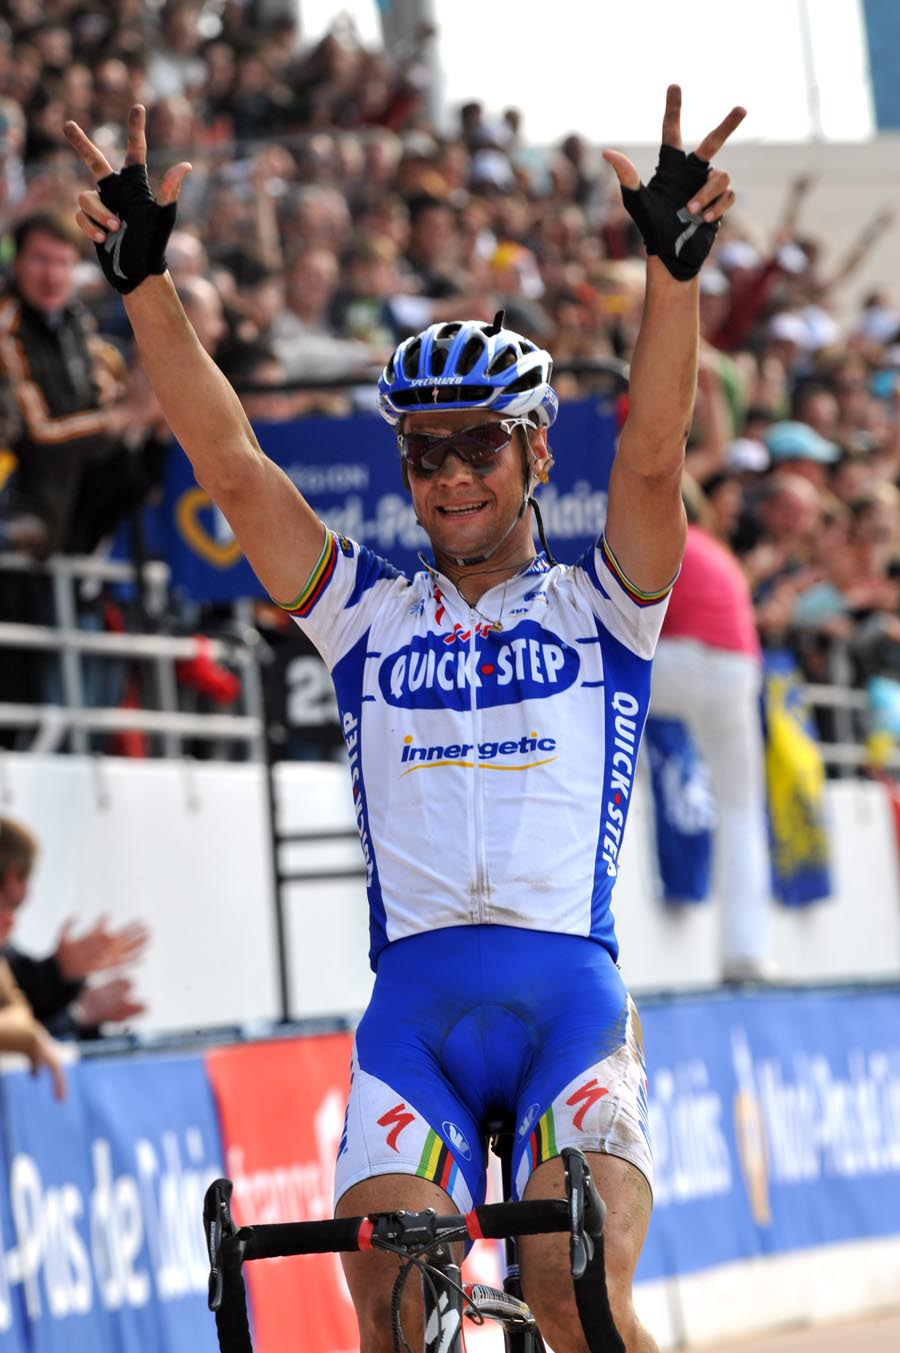 Tom Boonen wins his third Paris Roubaix